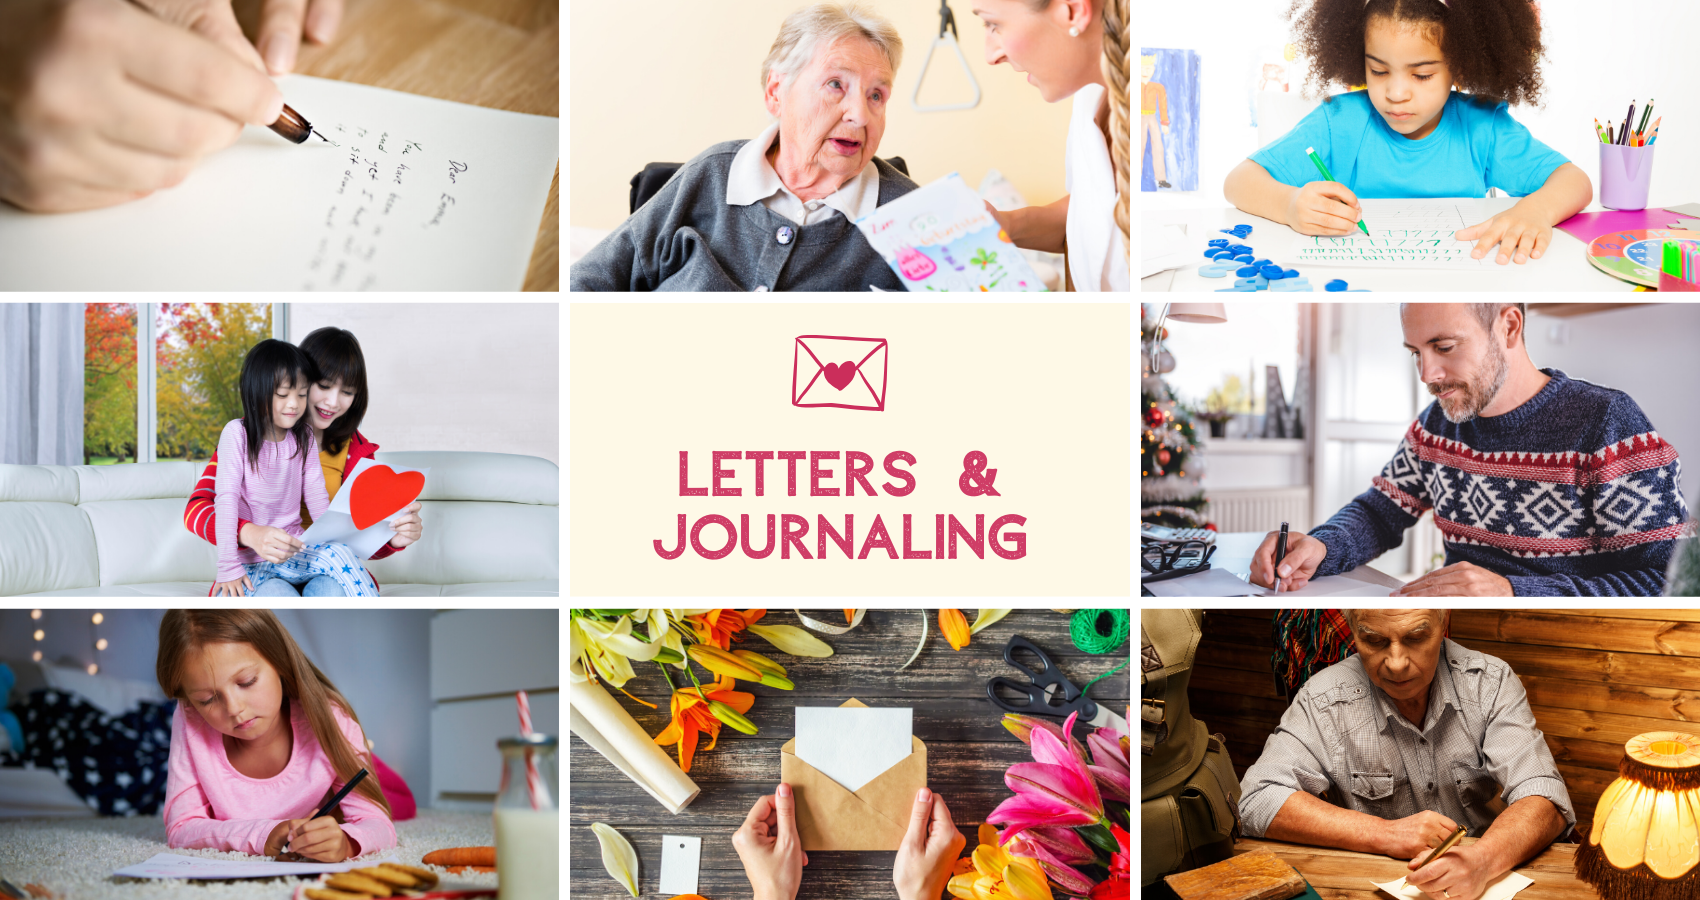 Journaling, Letters & Postcards